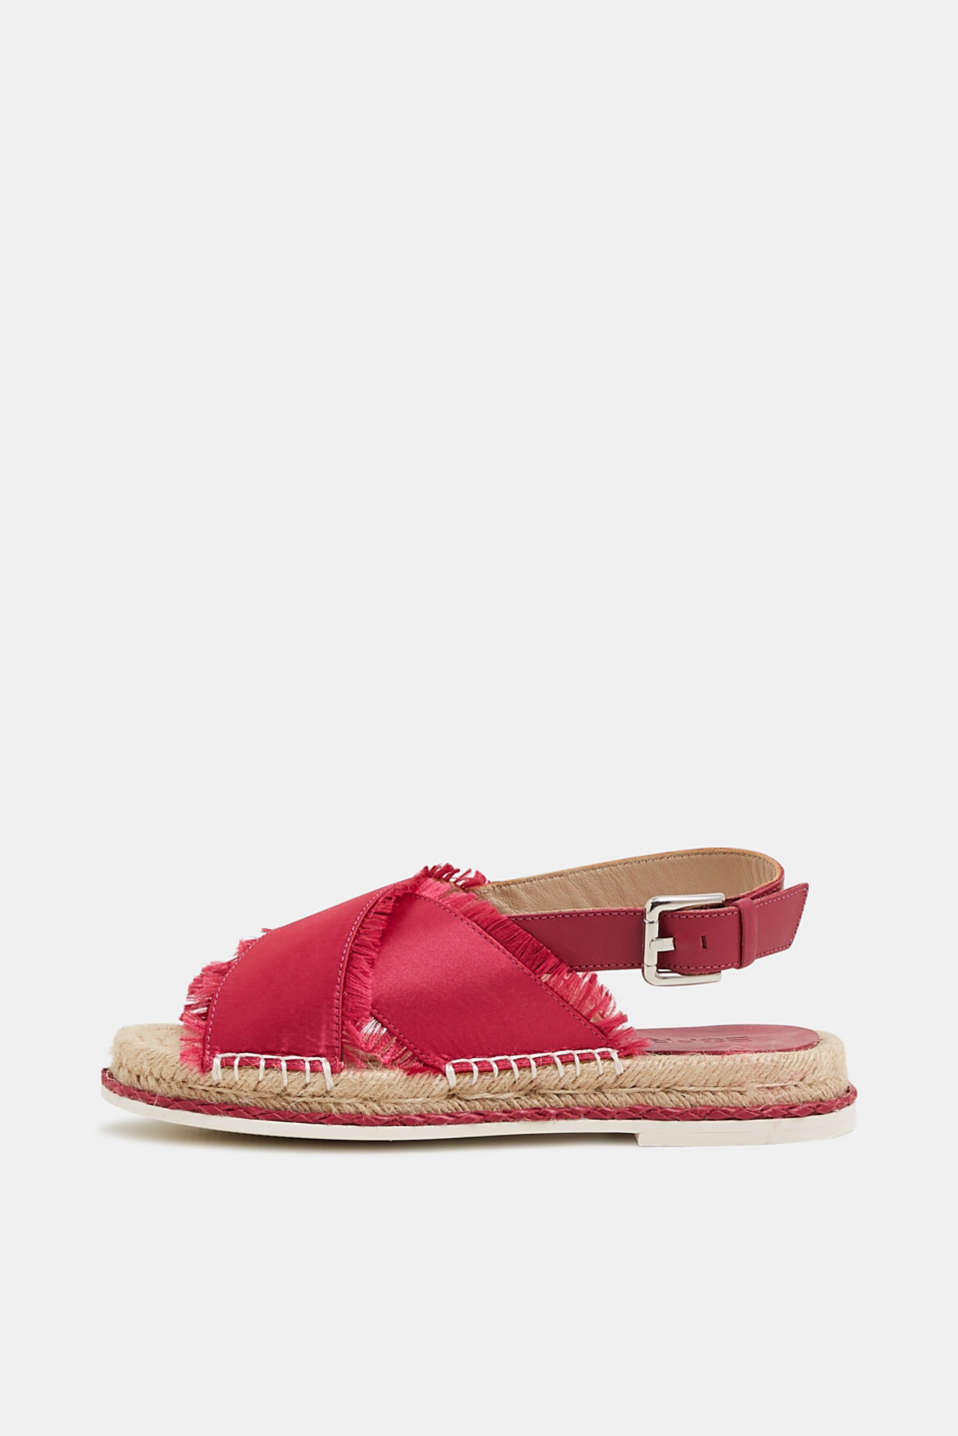 Esprit - Espadrilles sandals with a bast sole